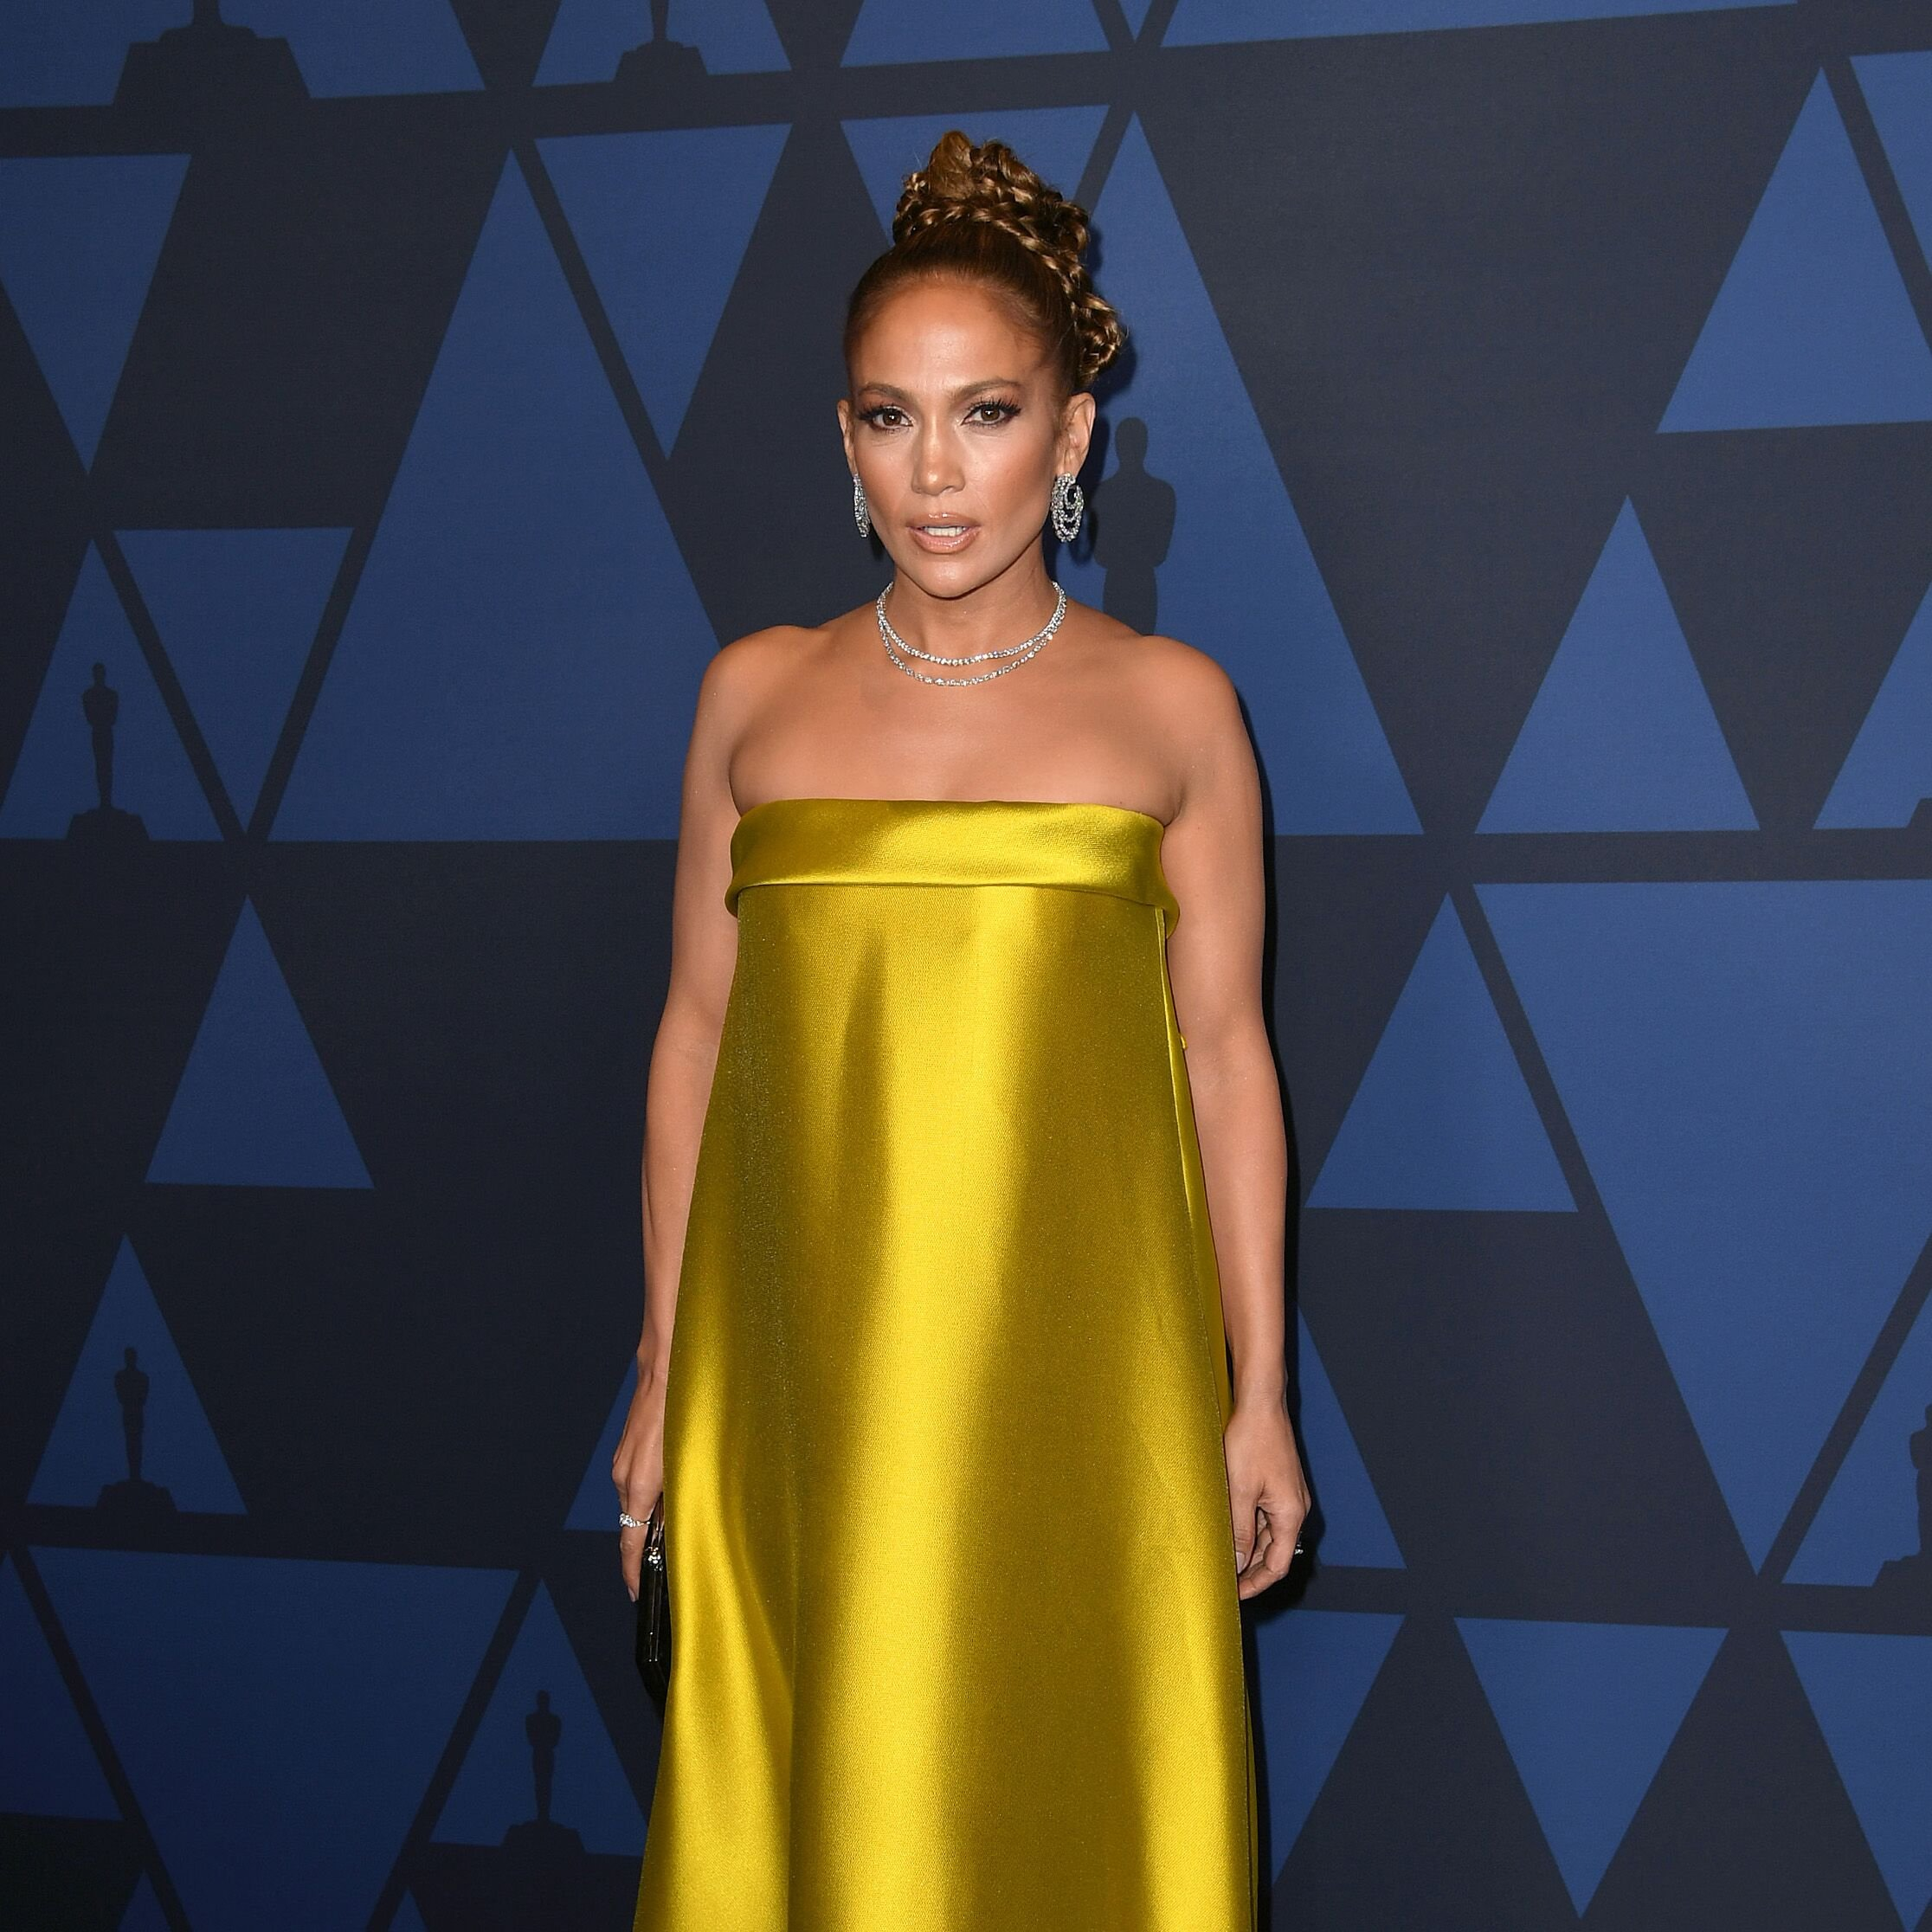 Jennifer Lopez at the Academy Of Motion Picture Arts And Sciences' 11th Annual Governors Awards on October 27, 2019, in Hollywood, California | Photo: Kevin Winter/Getty Images